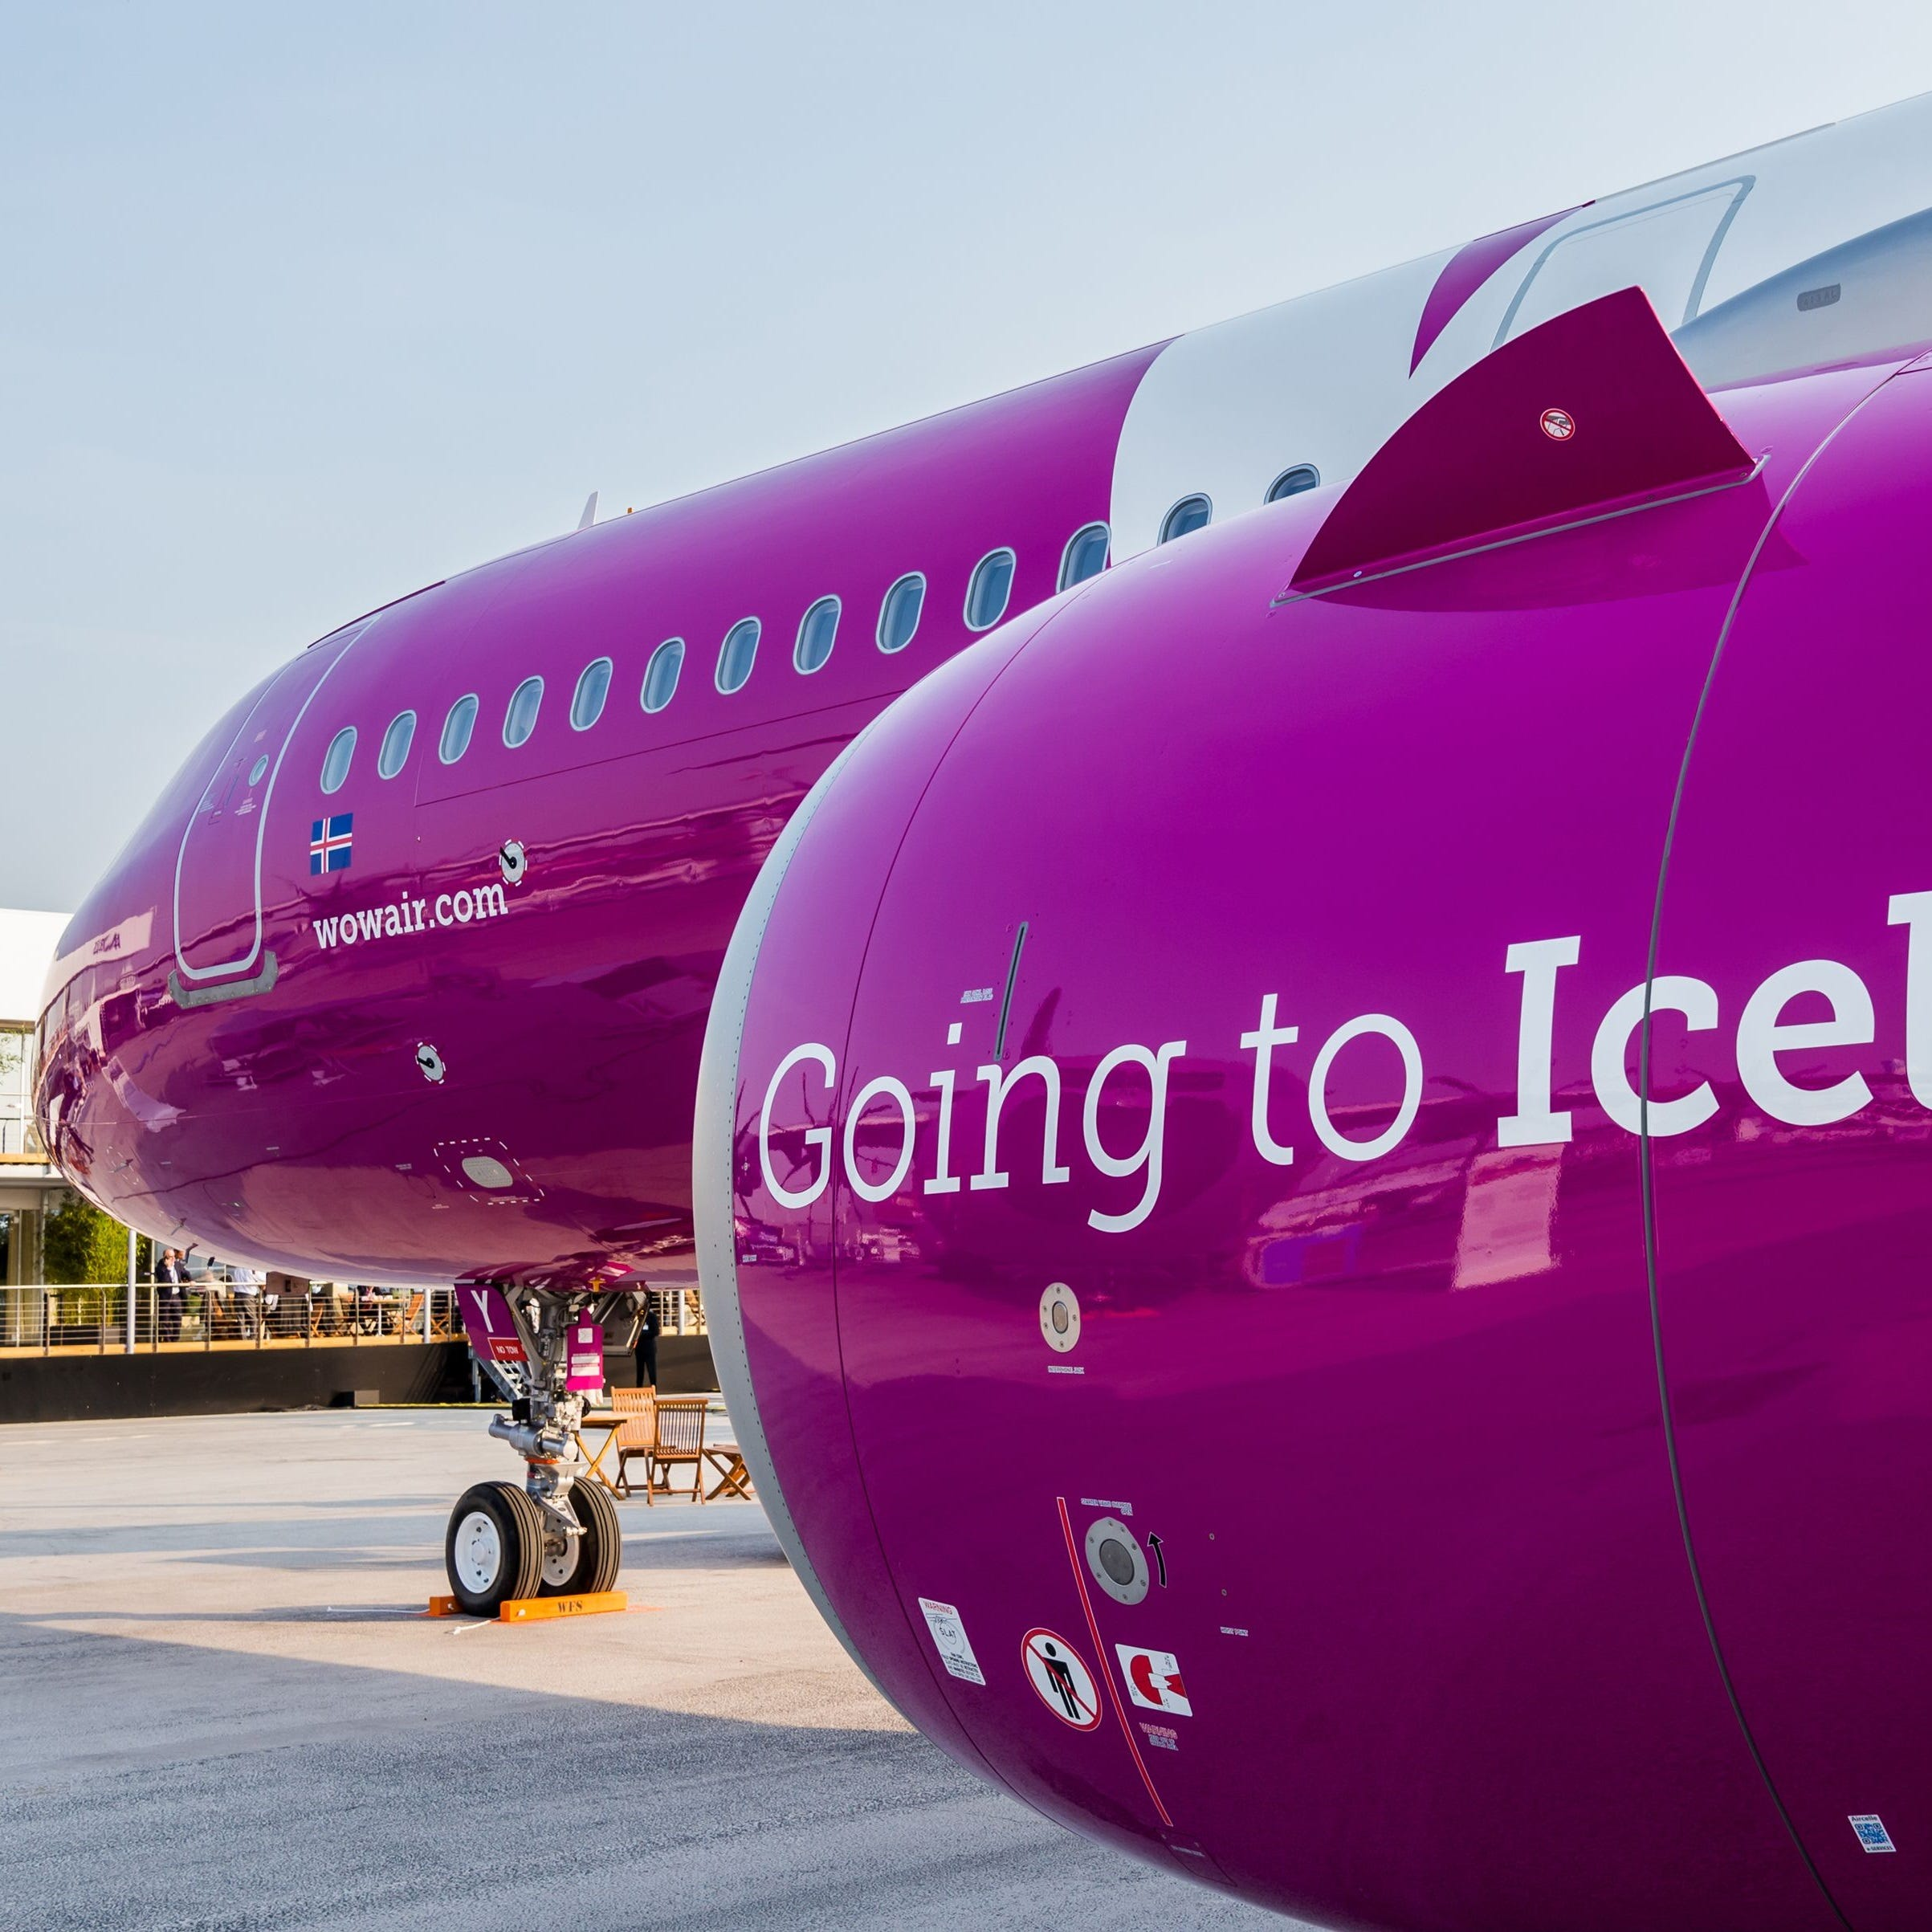 A WOW Air Airbus A321neo is seen at the 2017 Paris Air Show.